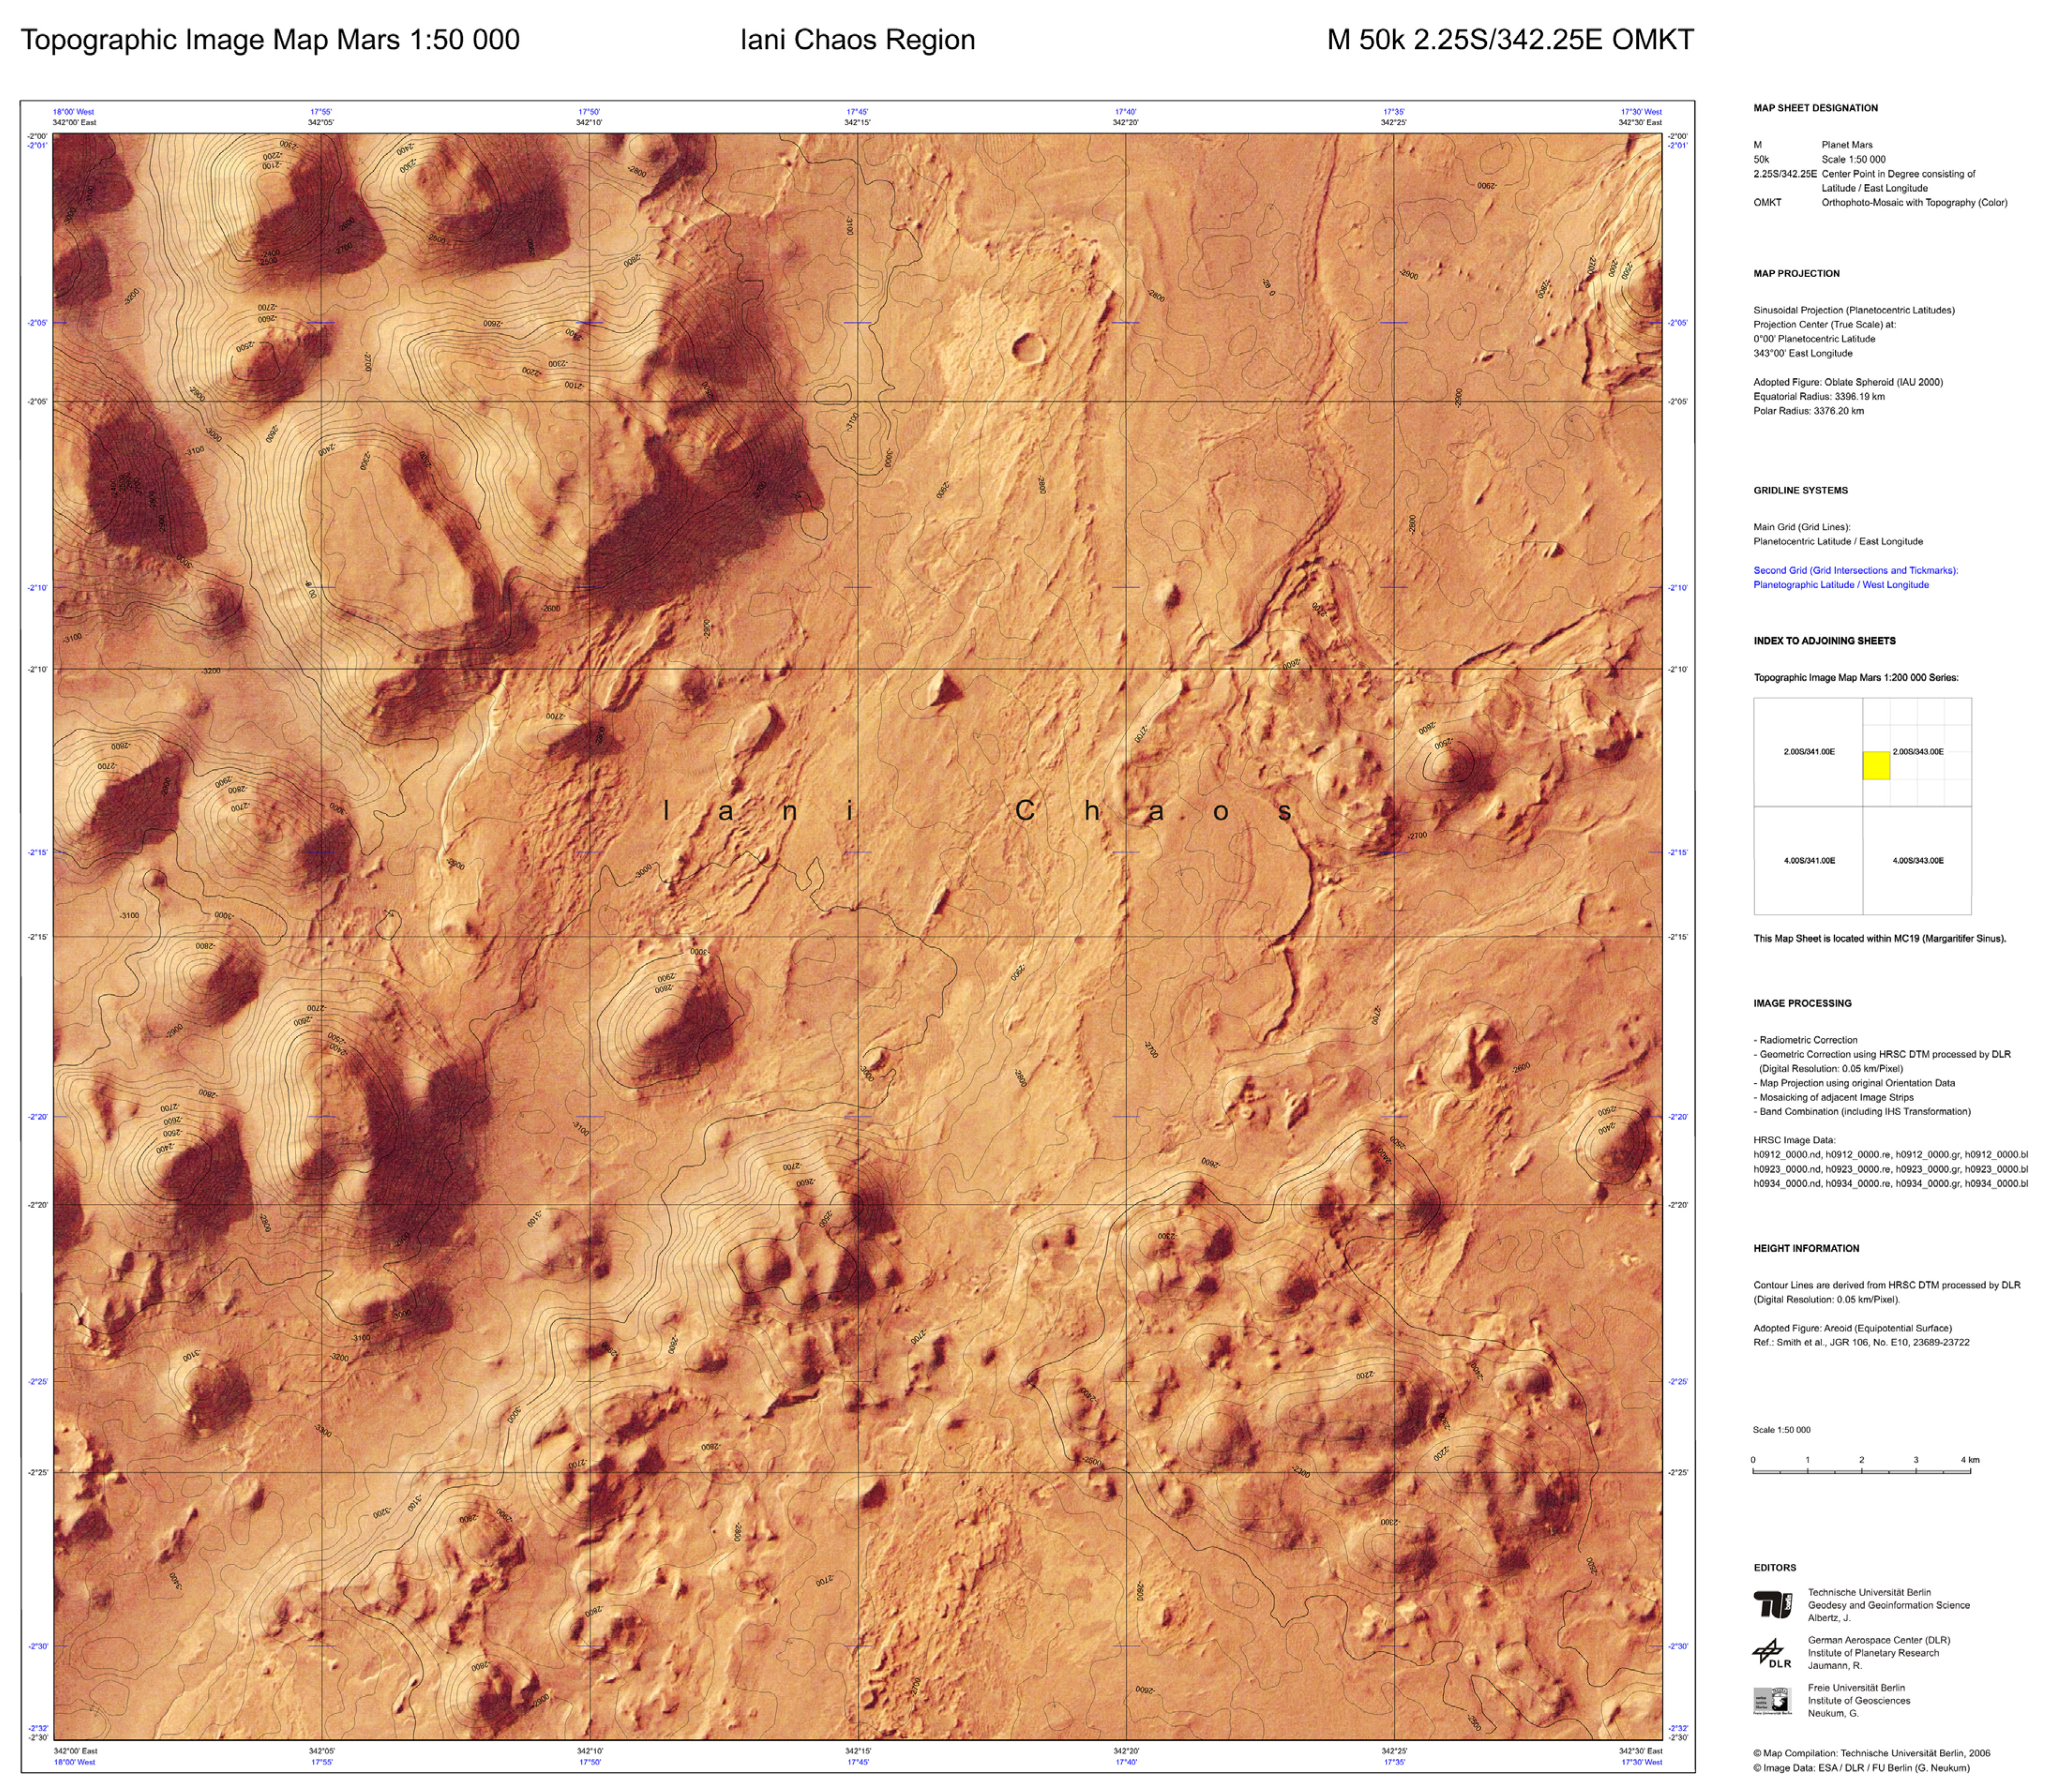 The High Resolution Stereo Camera (HRSC) of Mars Express and its